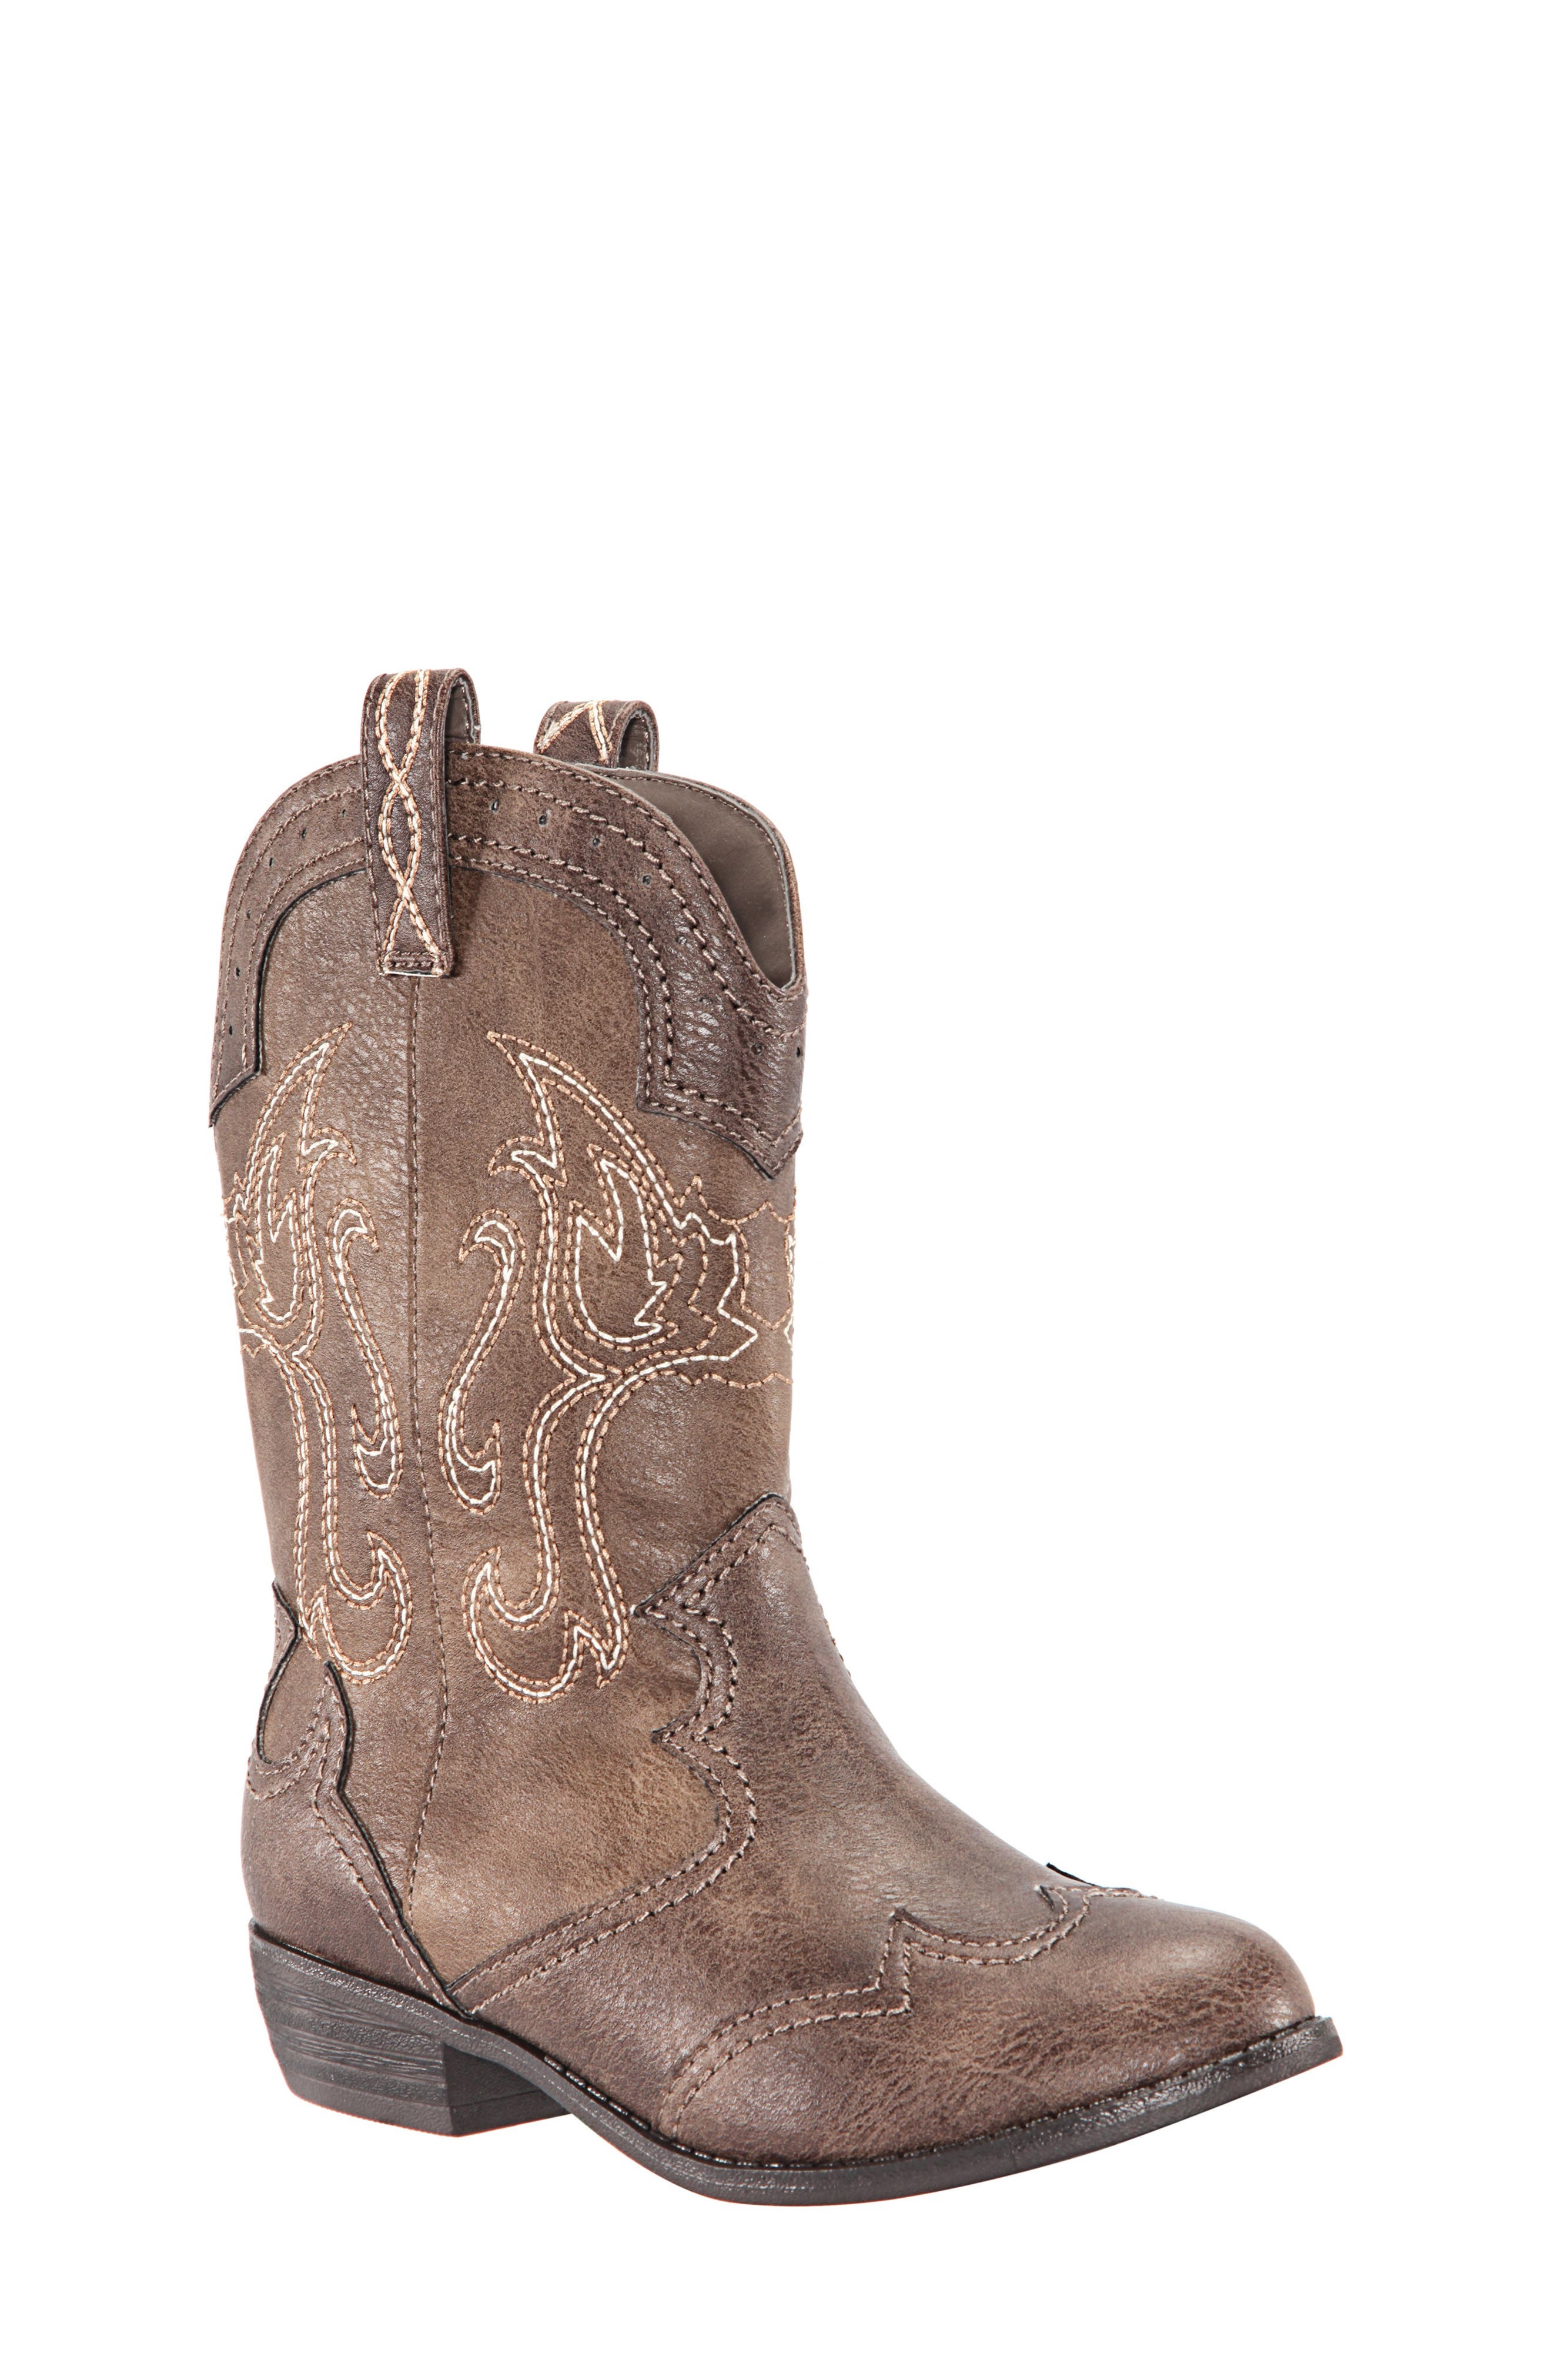 Beti Western Boot,                             Main thumbnail 1, color,                             BROWN DISTRESSED